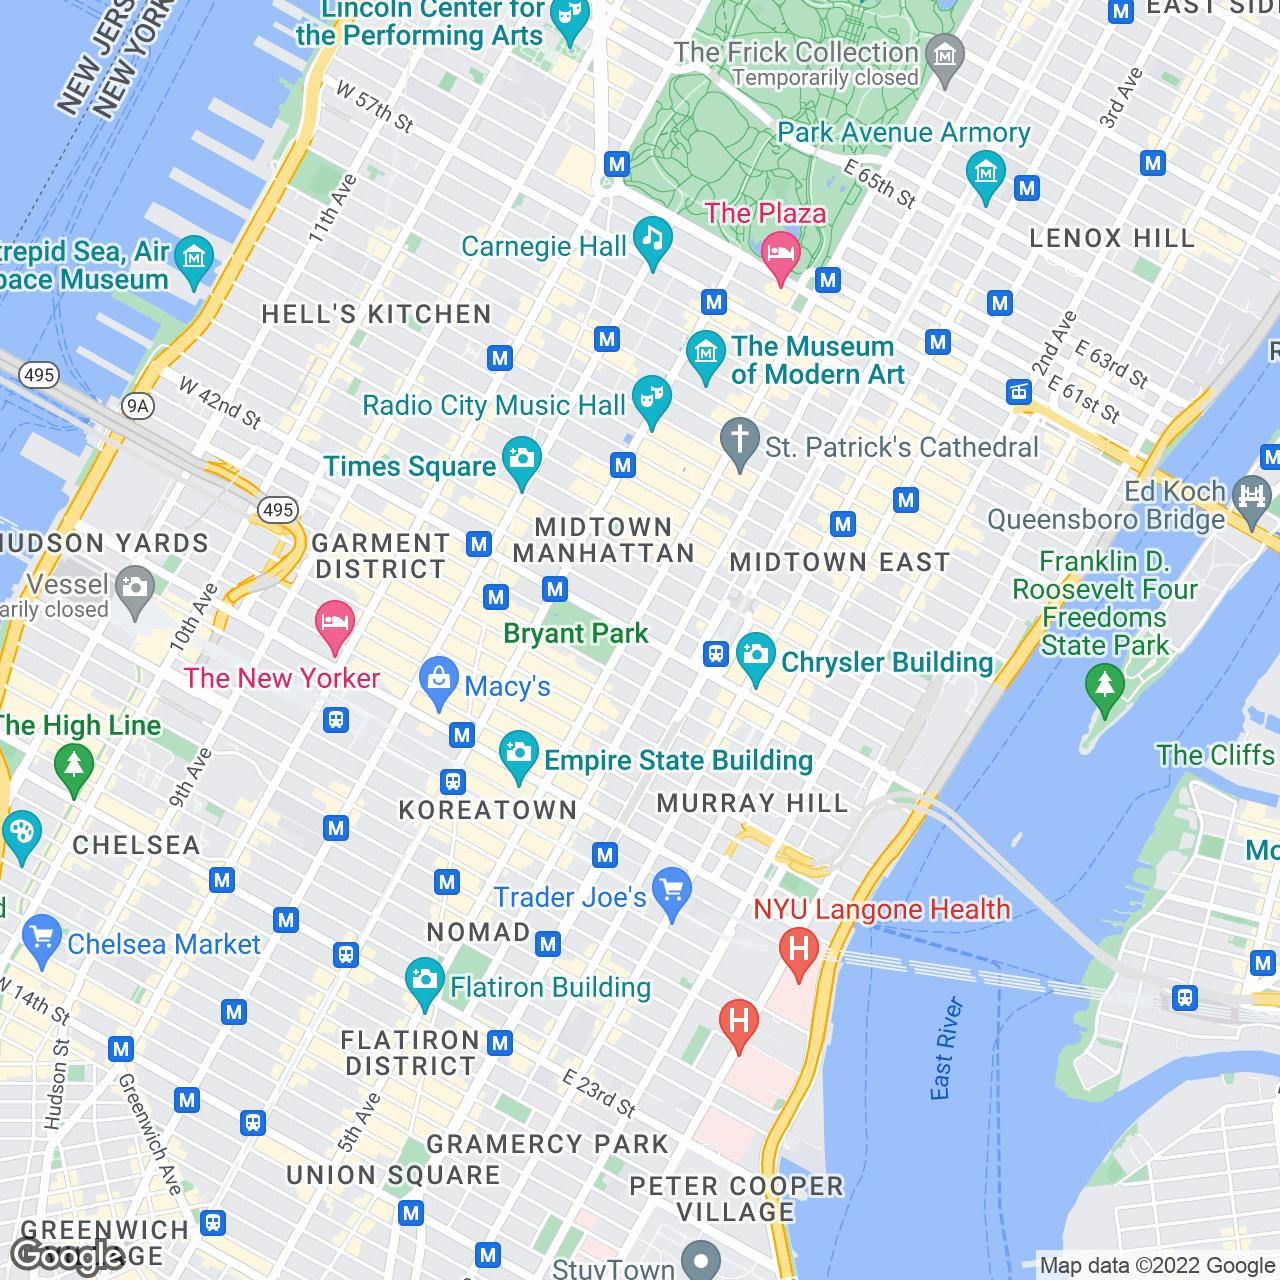 TopView Sightseeing Tours - Tours map